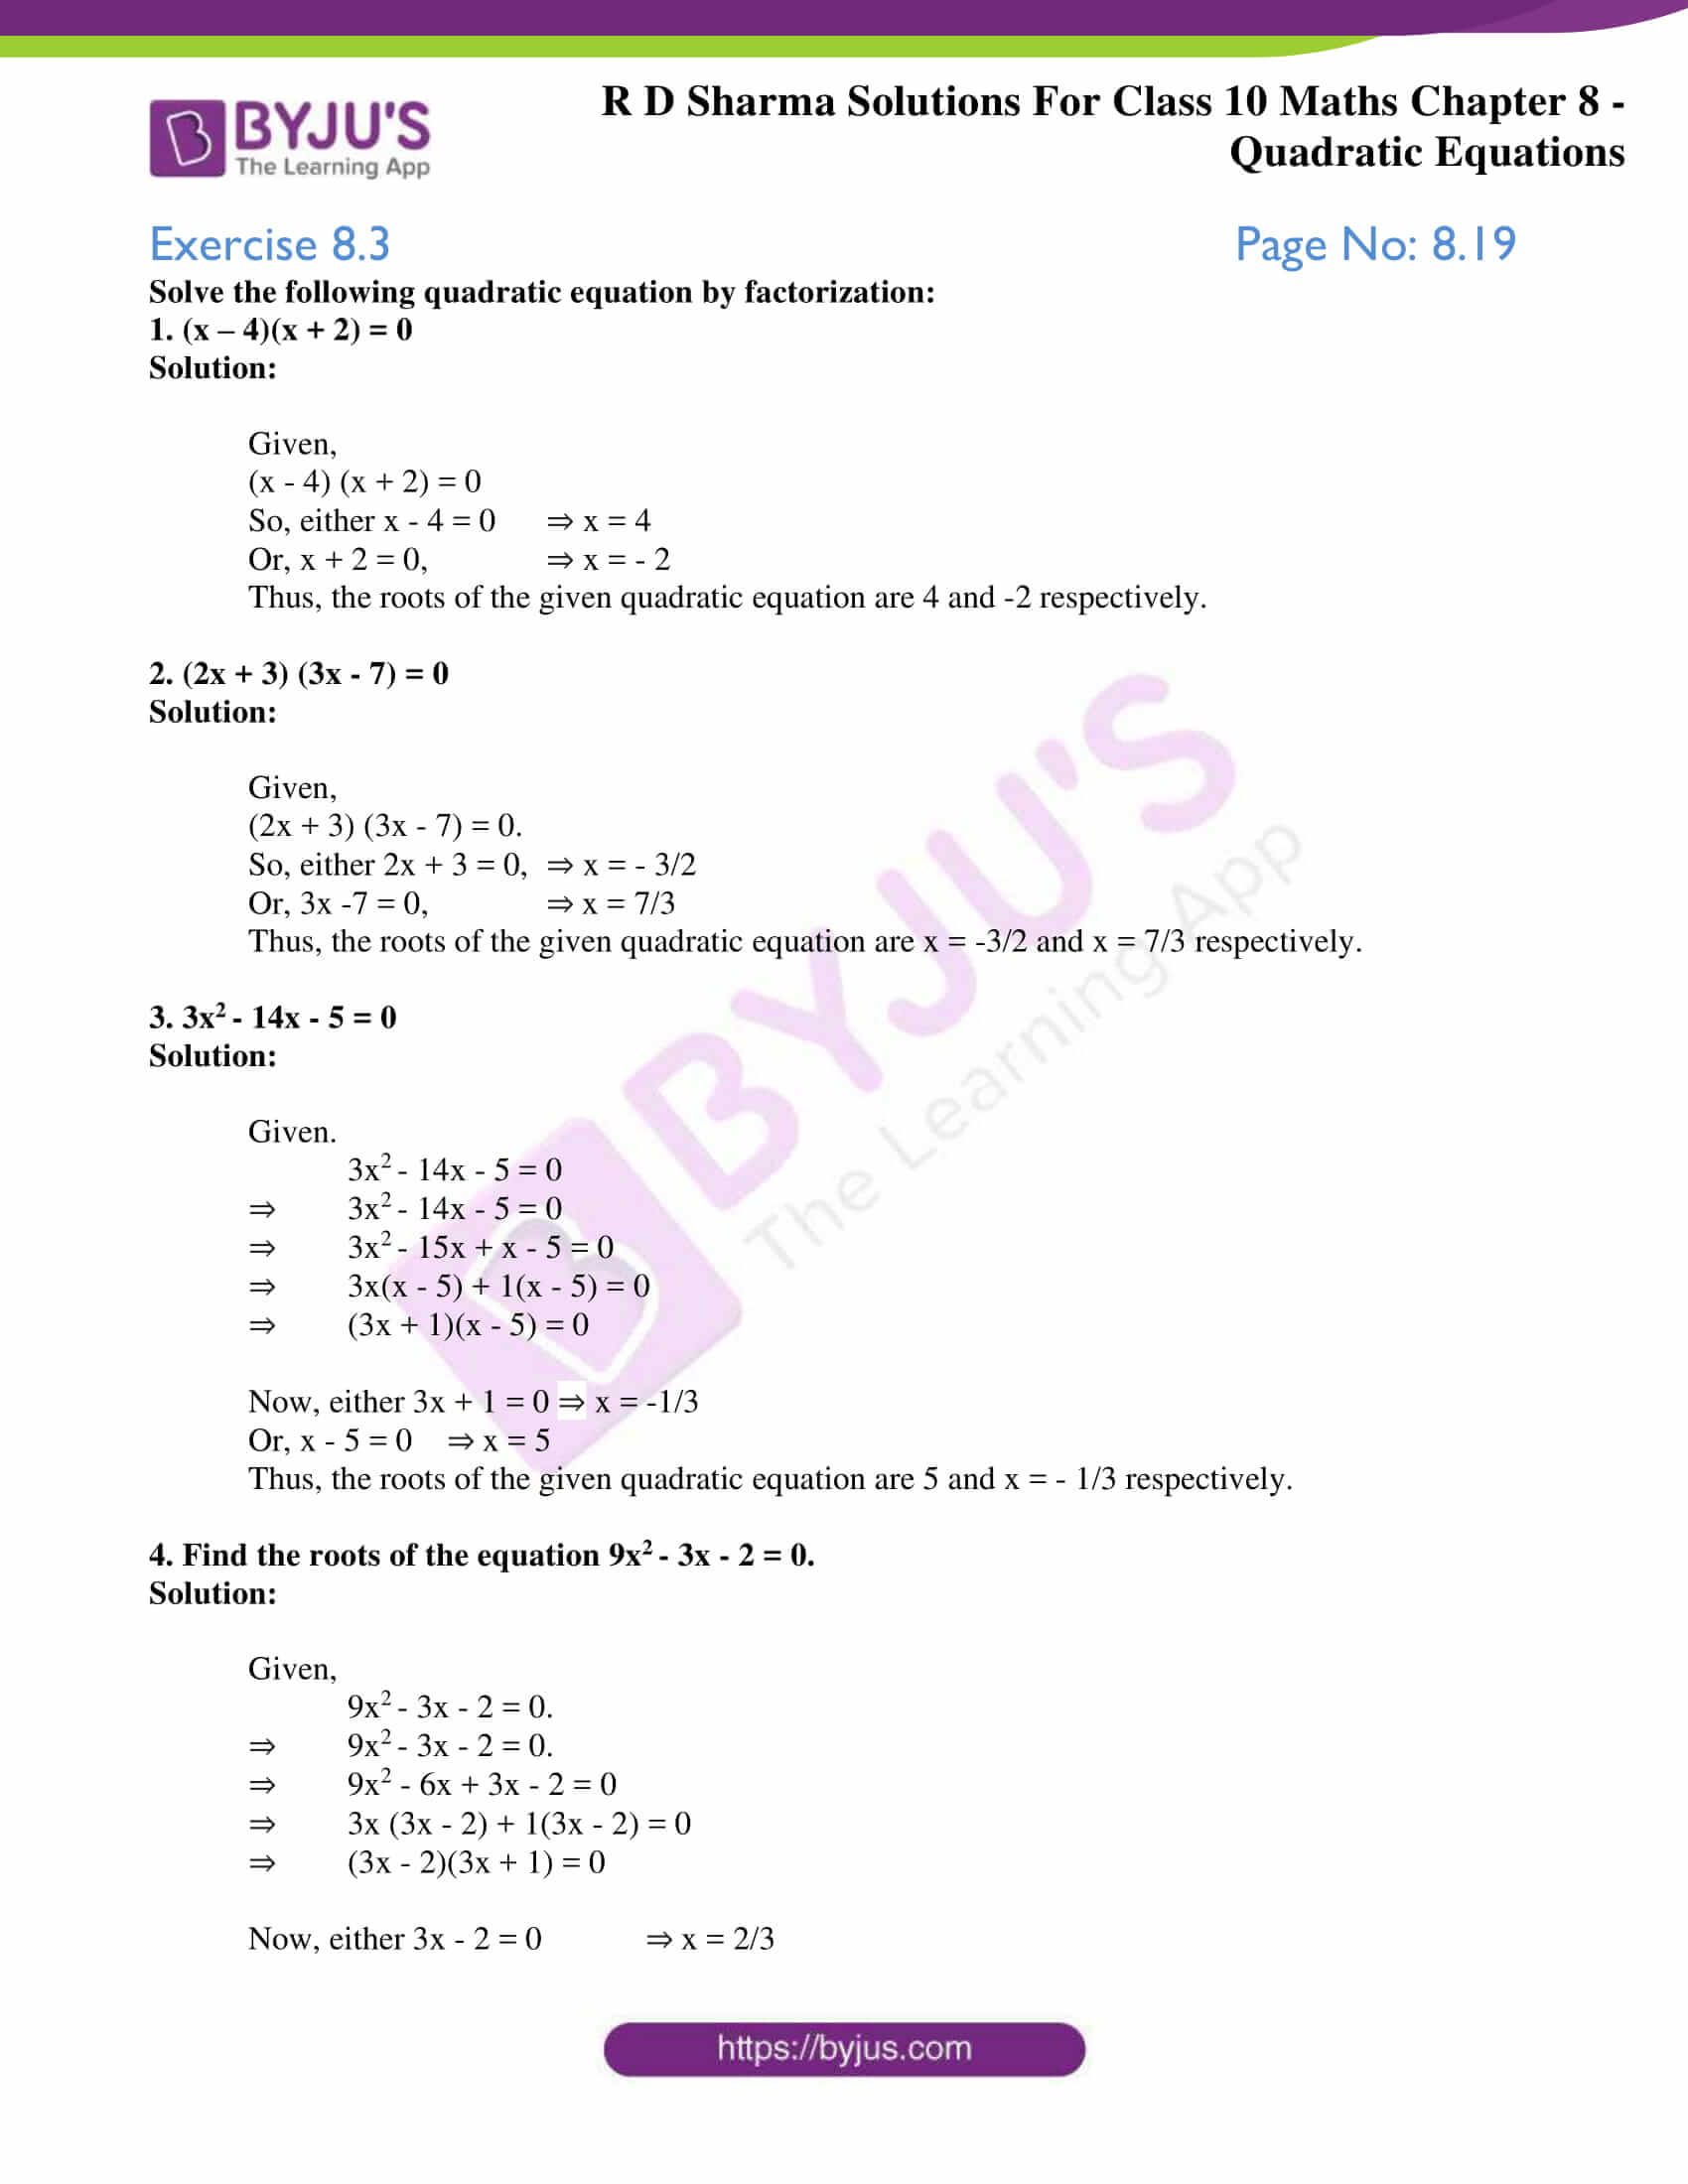 RD Sharma Solutions for Class 10 Chapter 8 Quadratic Equations 10